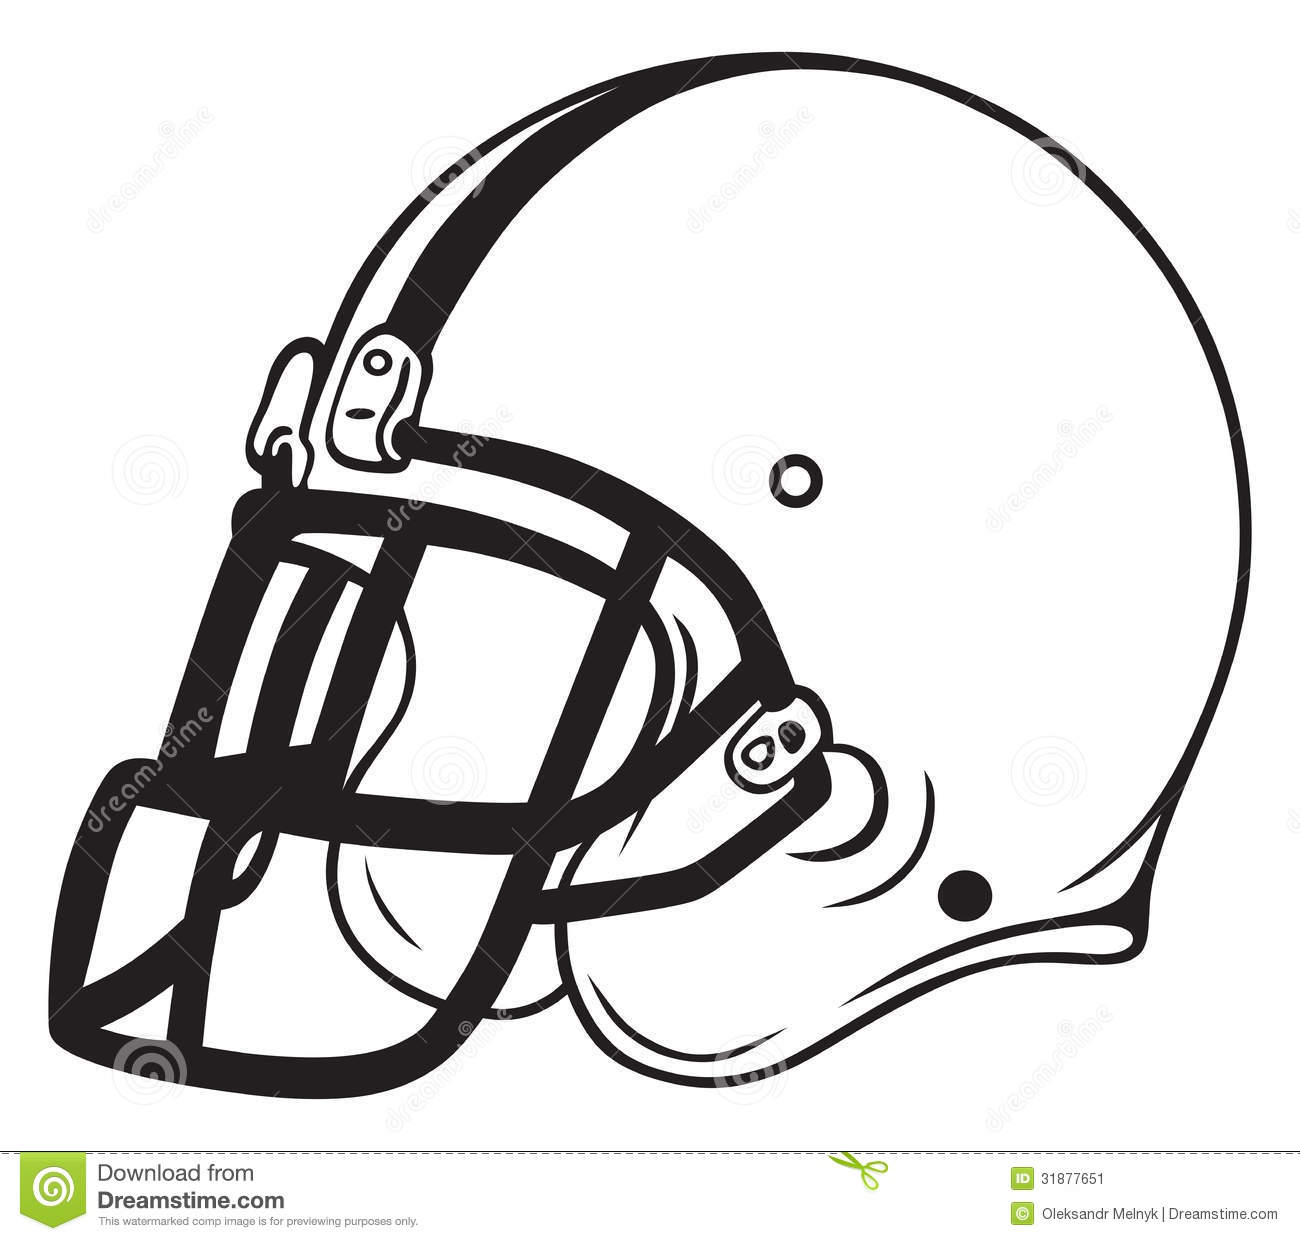 Football helmet clipart no background.